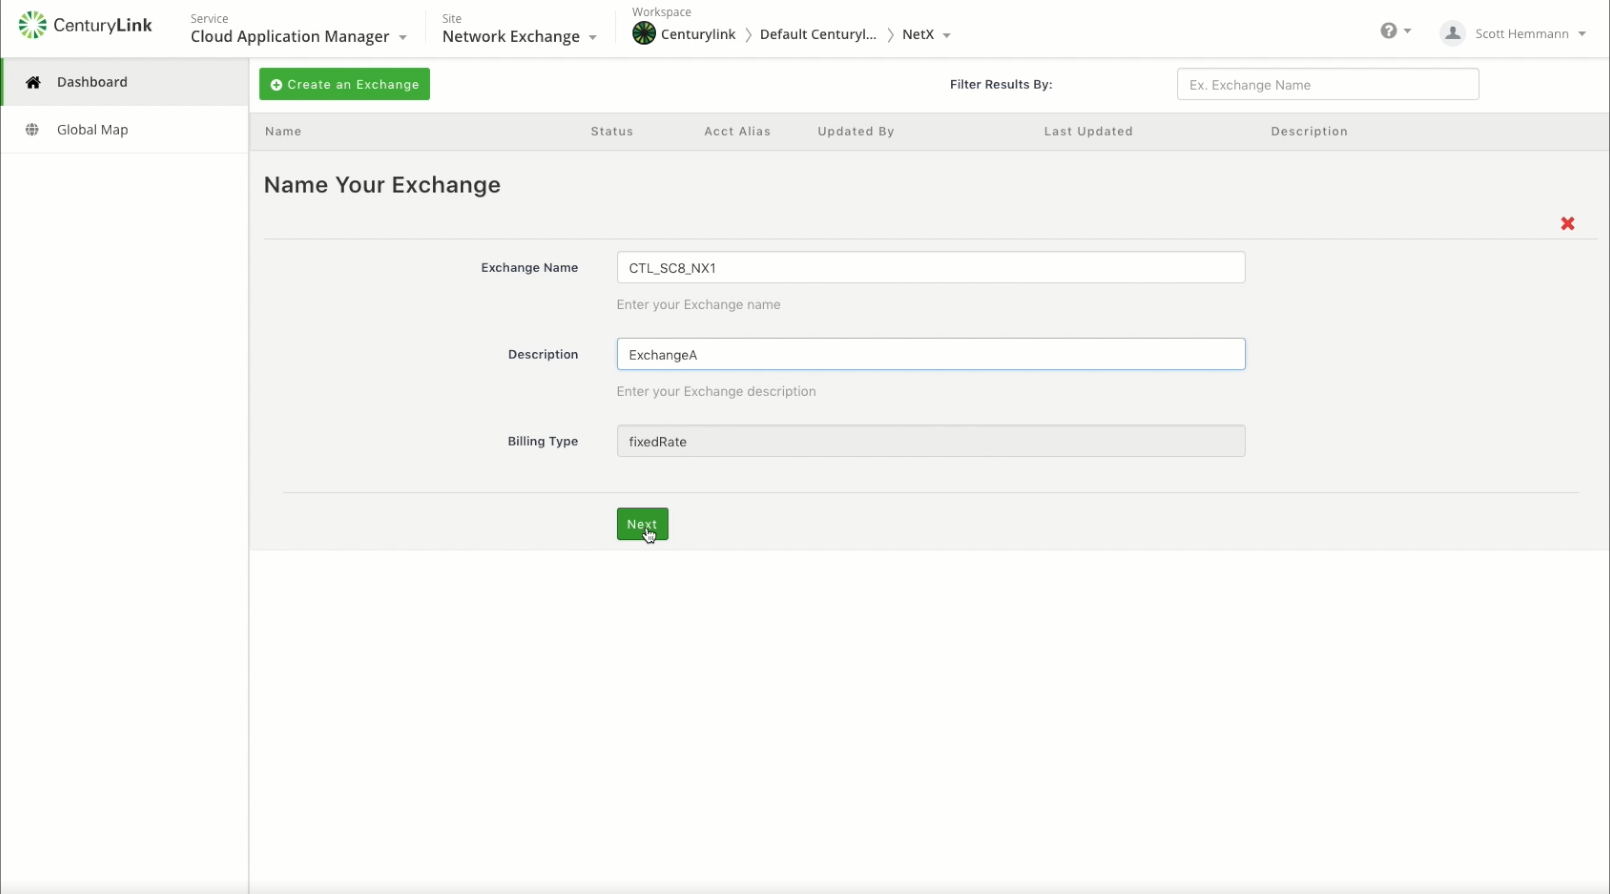 Creating and Deleting an Exchange